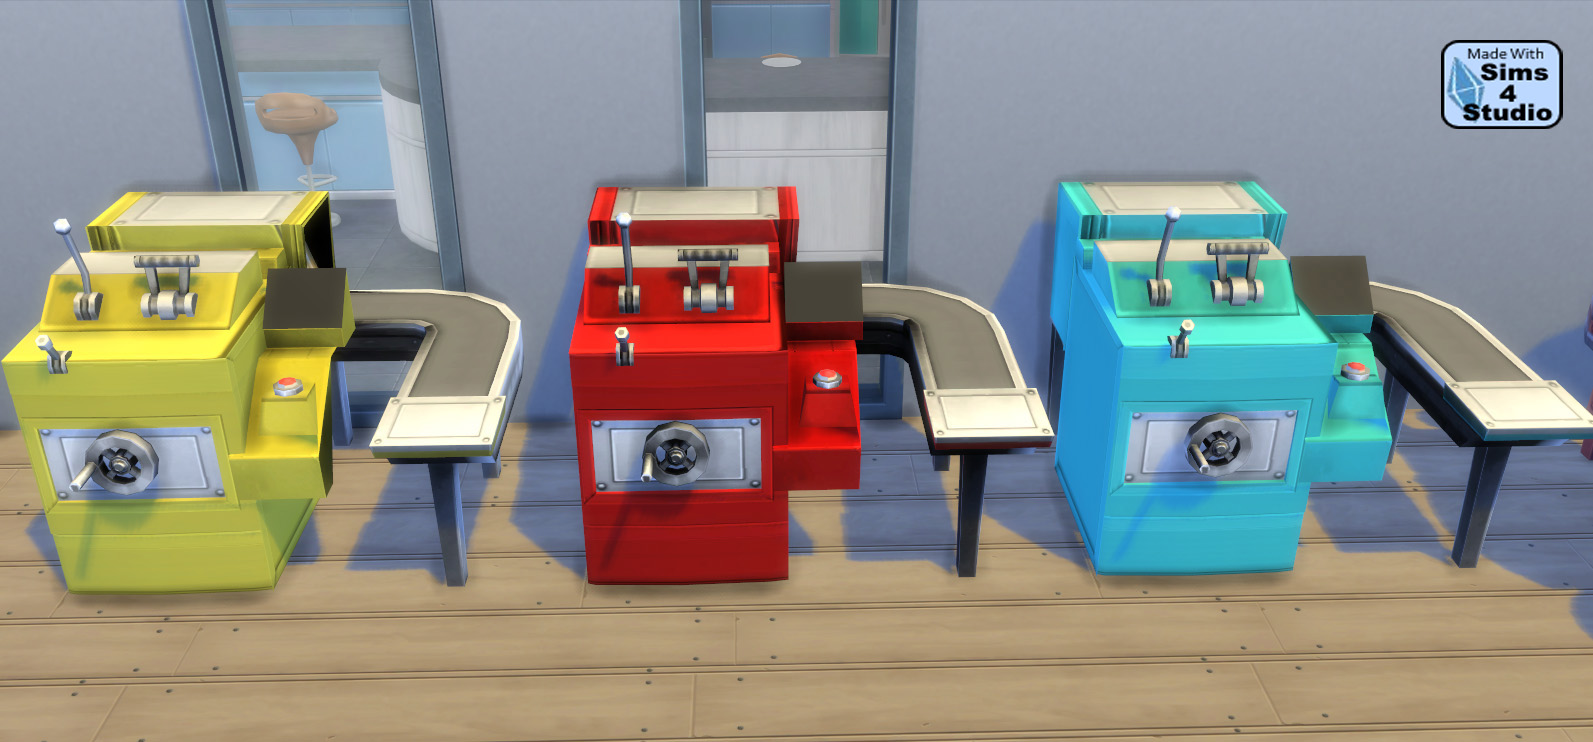 Smaller Cupcake Machine by Esmeralda